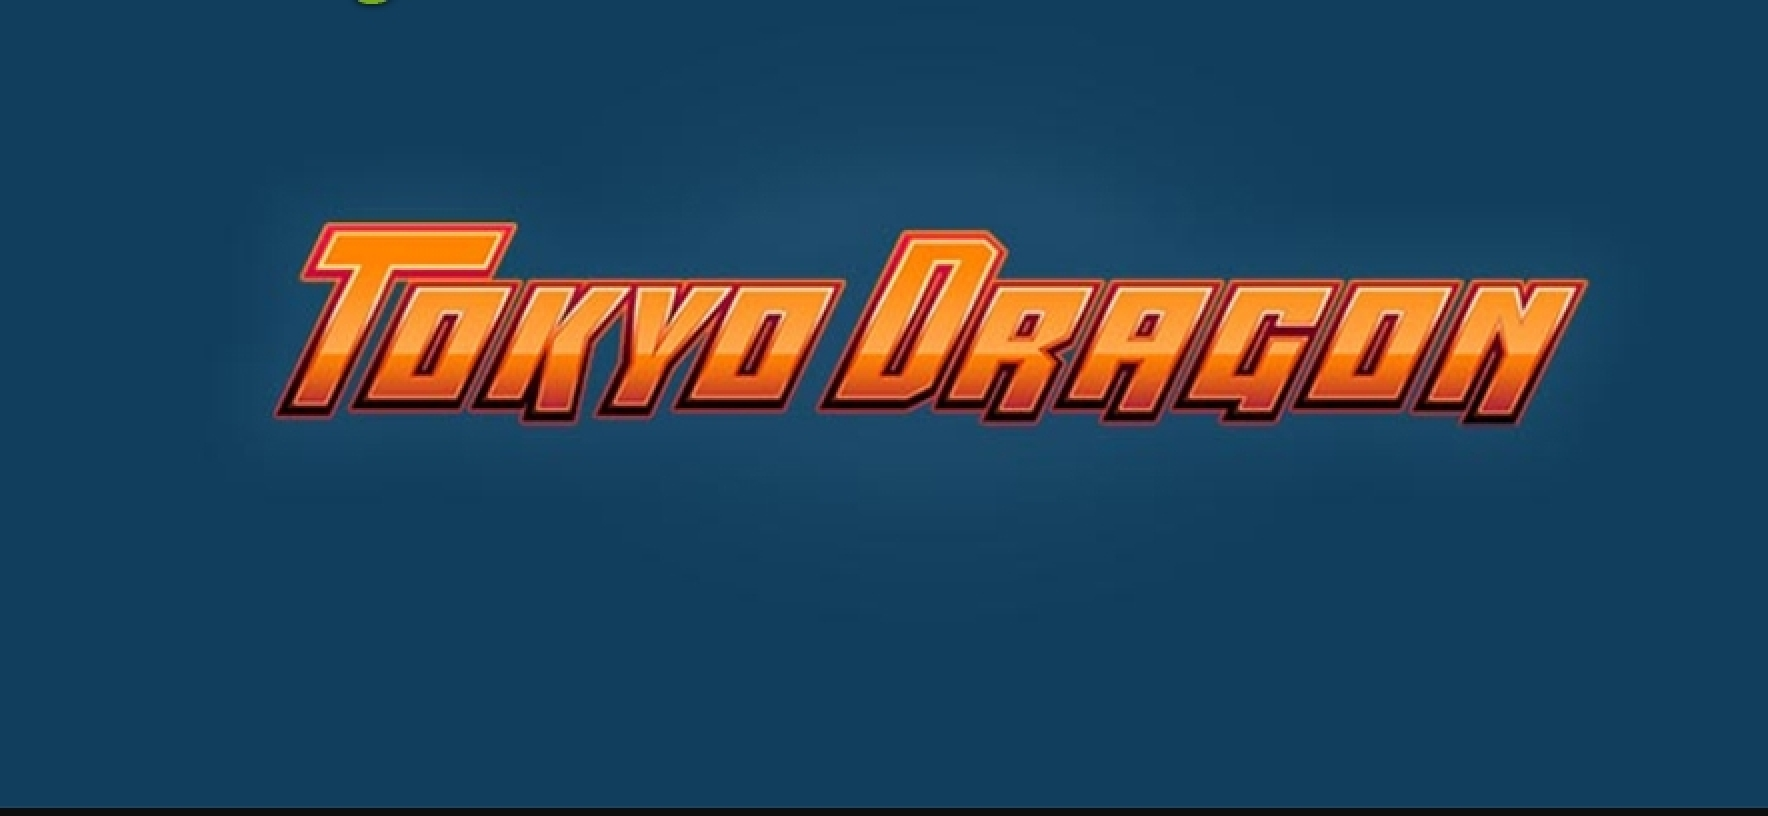 Win Money in Tokyo Dragon Free Slot Game by Swintt